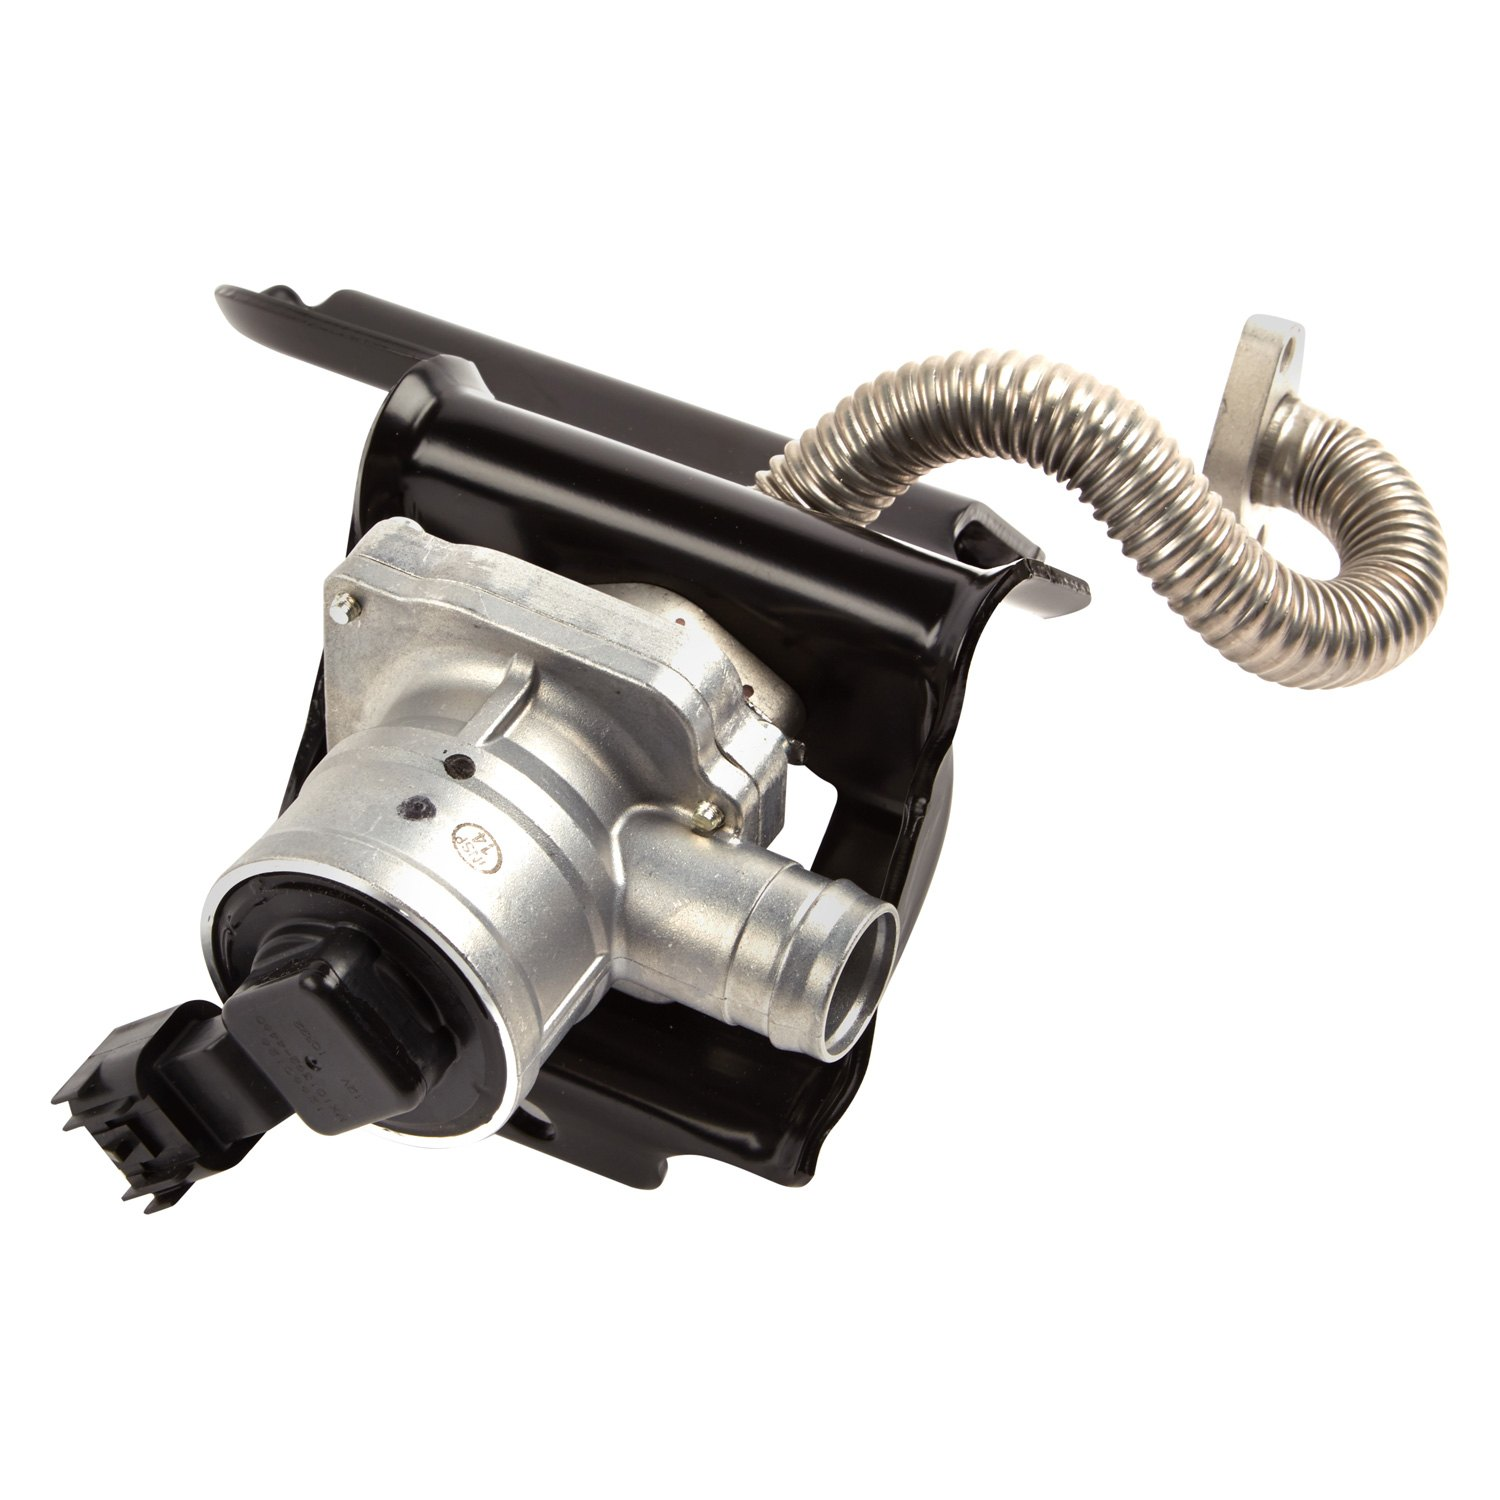 Acdelco gm original equipment secondary air injection shut off and check valveacdelco